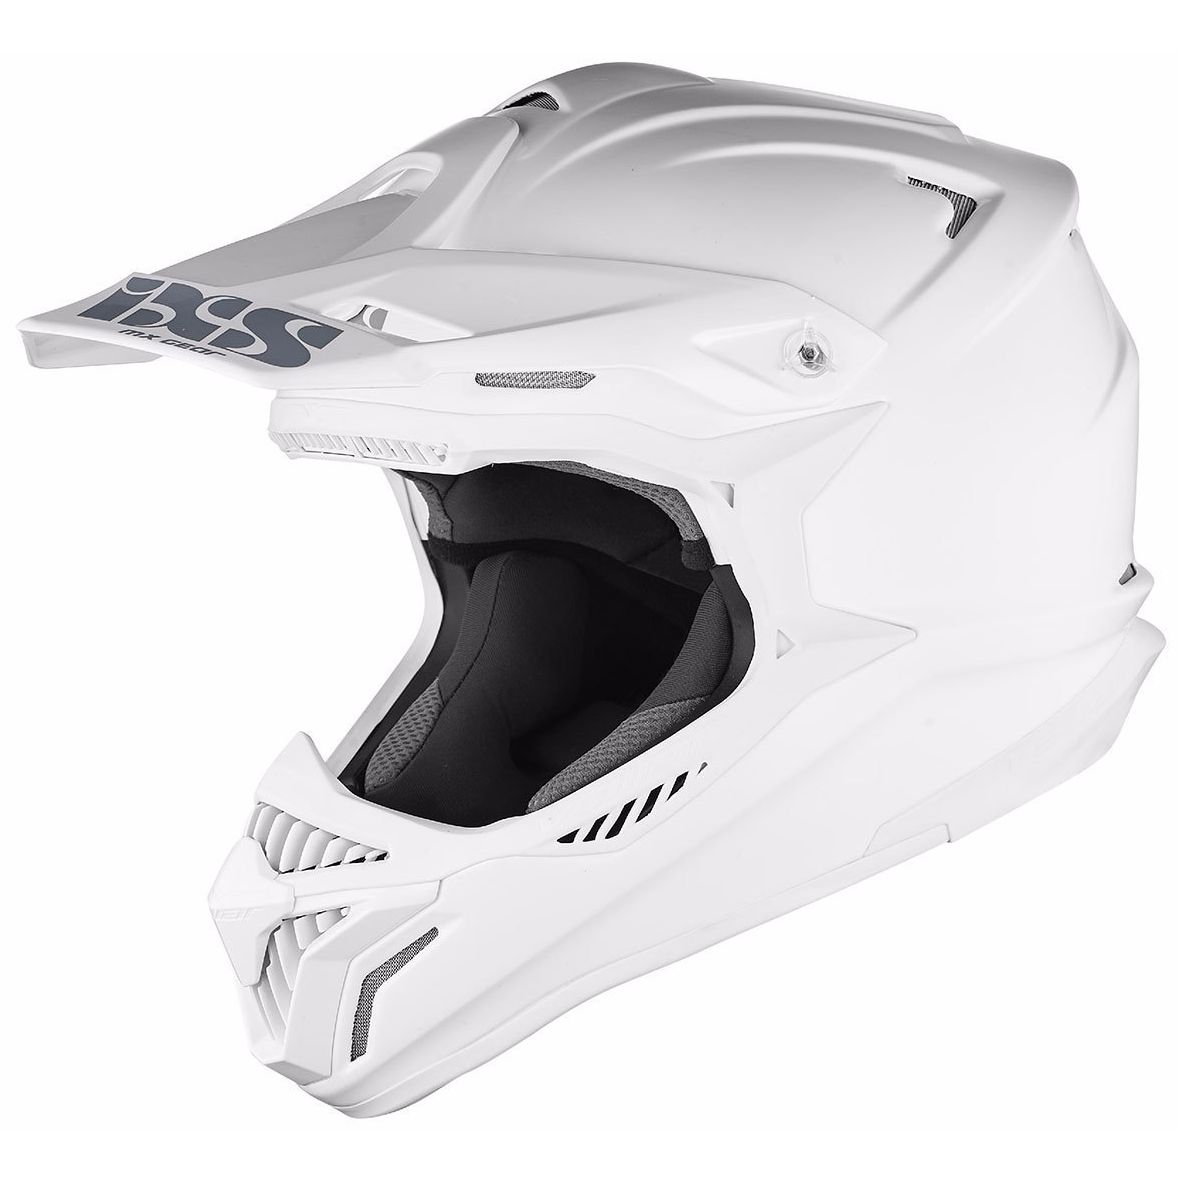 Casque Cross Ixs Hx179 - Blanc